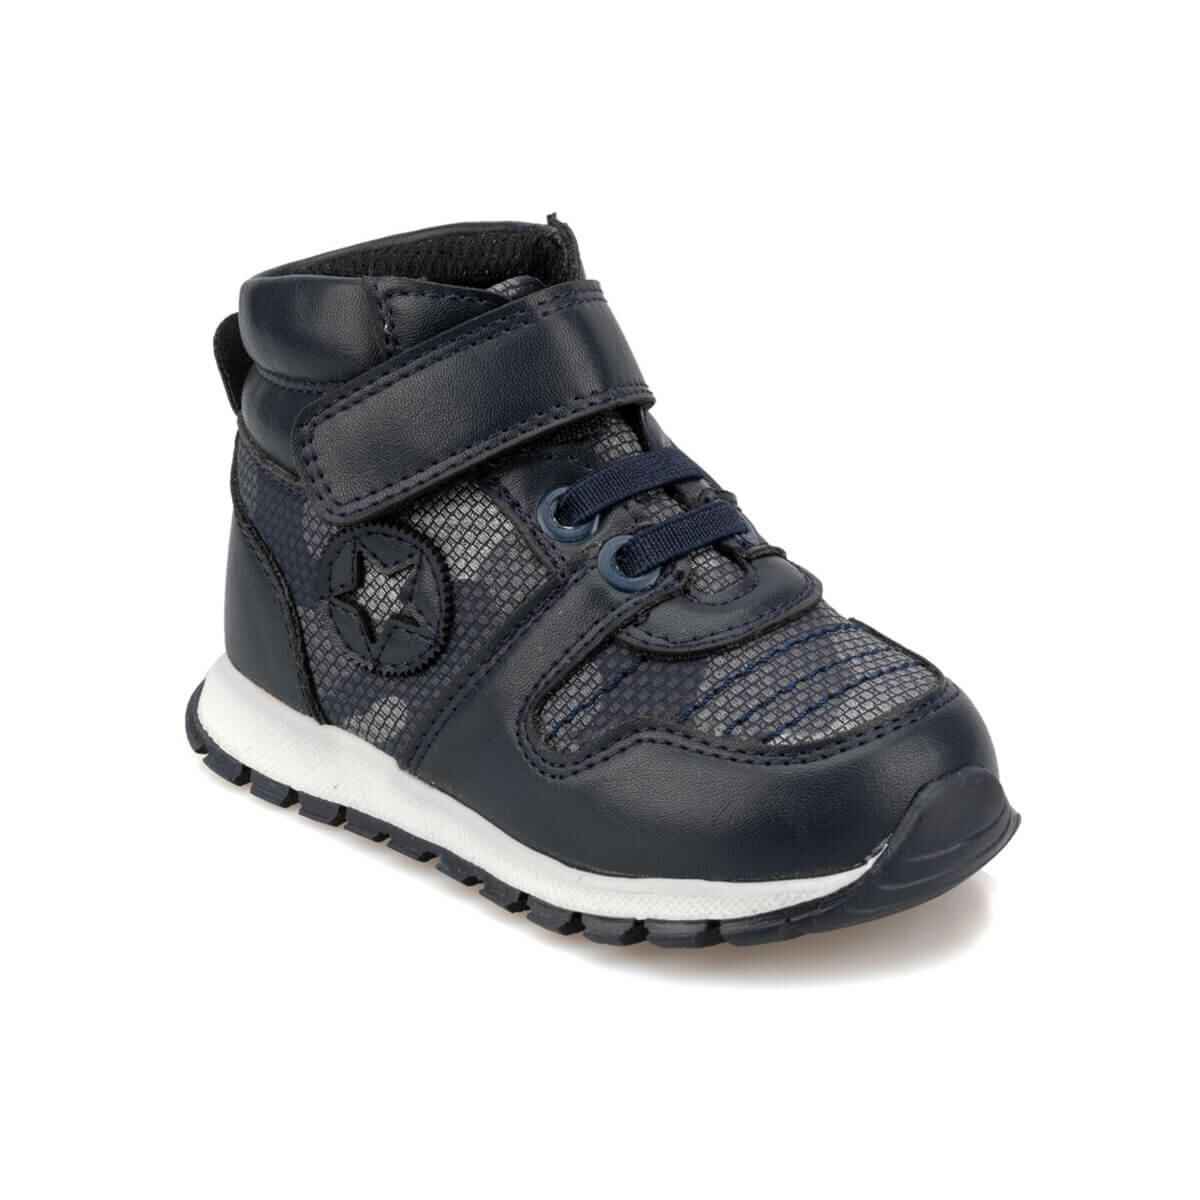 FLO 92.511721.B Navy Blue Male Child Sports Shoes Polaris